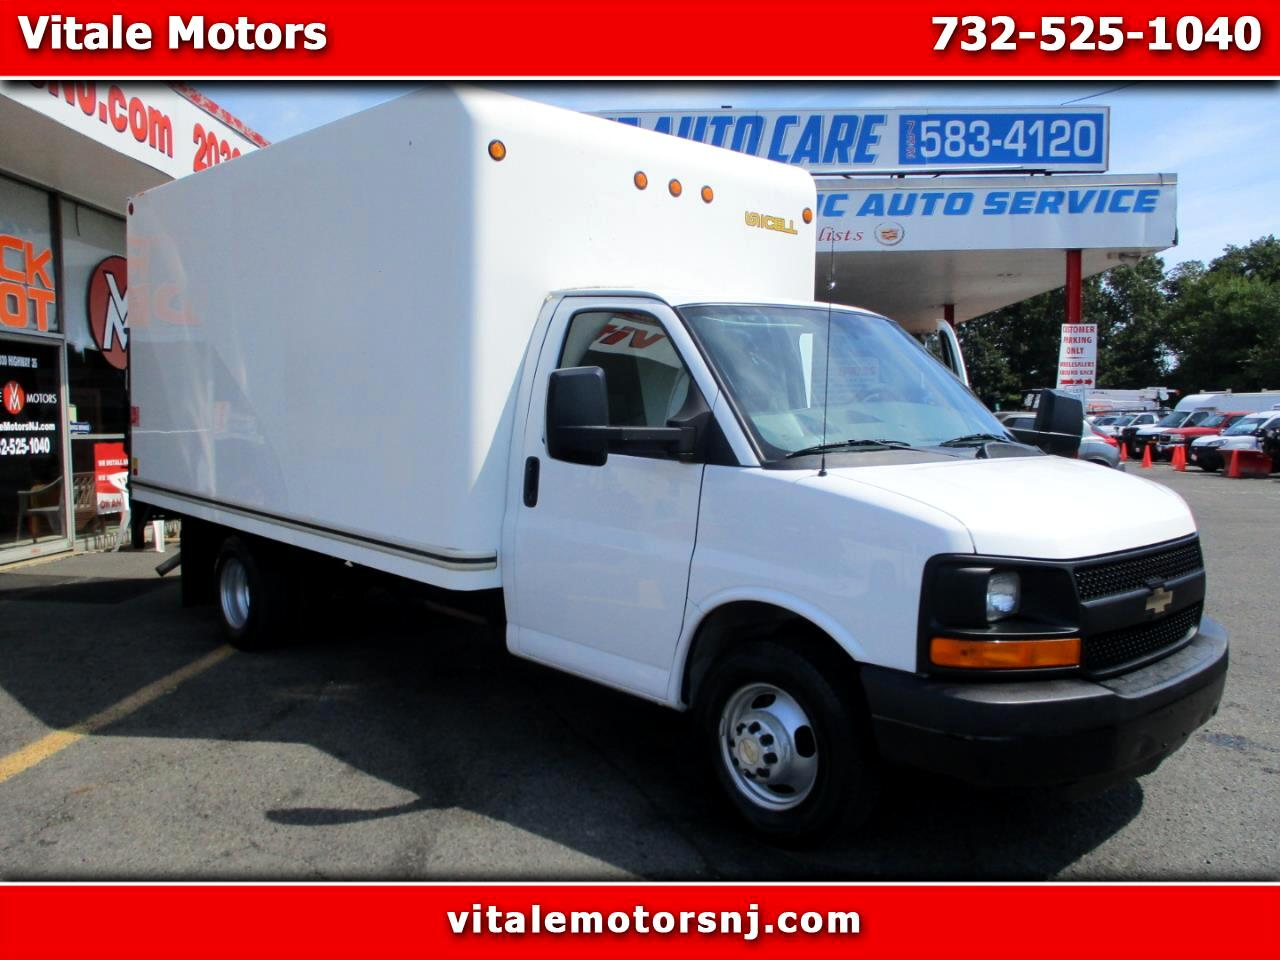 2013 Chevrolet Express G3500 14 FOOT BOX TRUCK W/ LIFTGATE